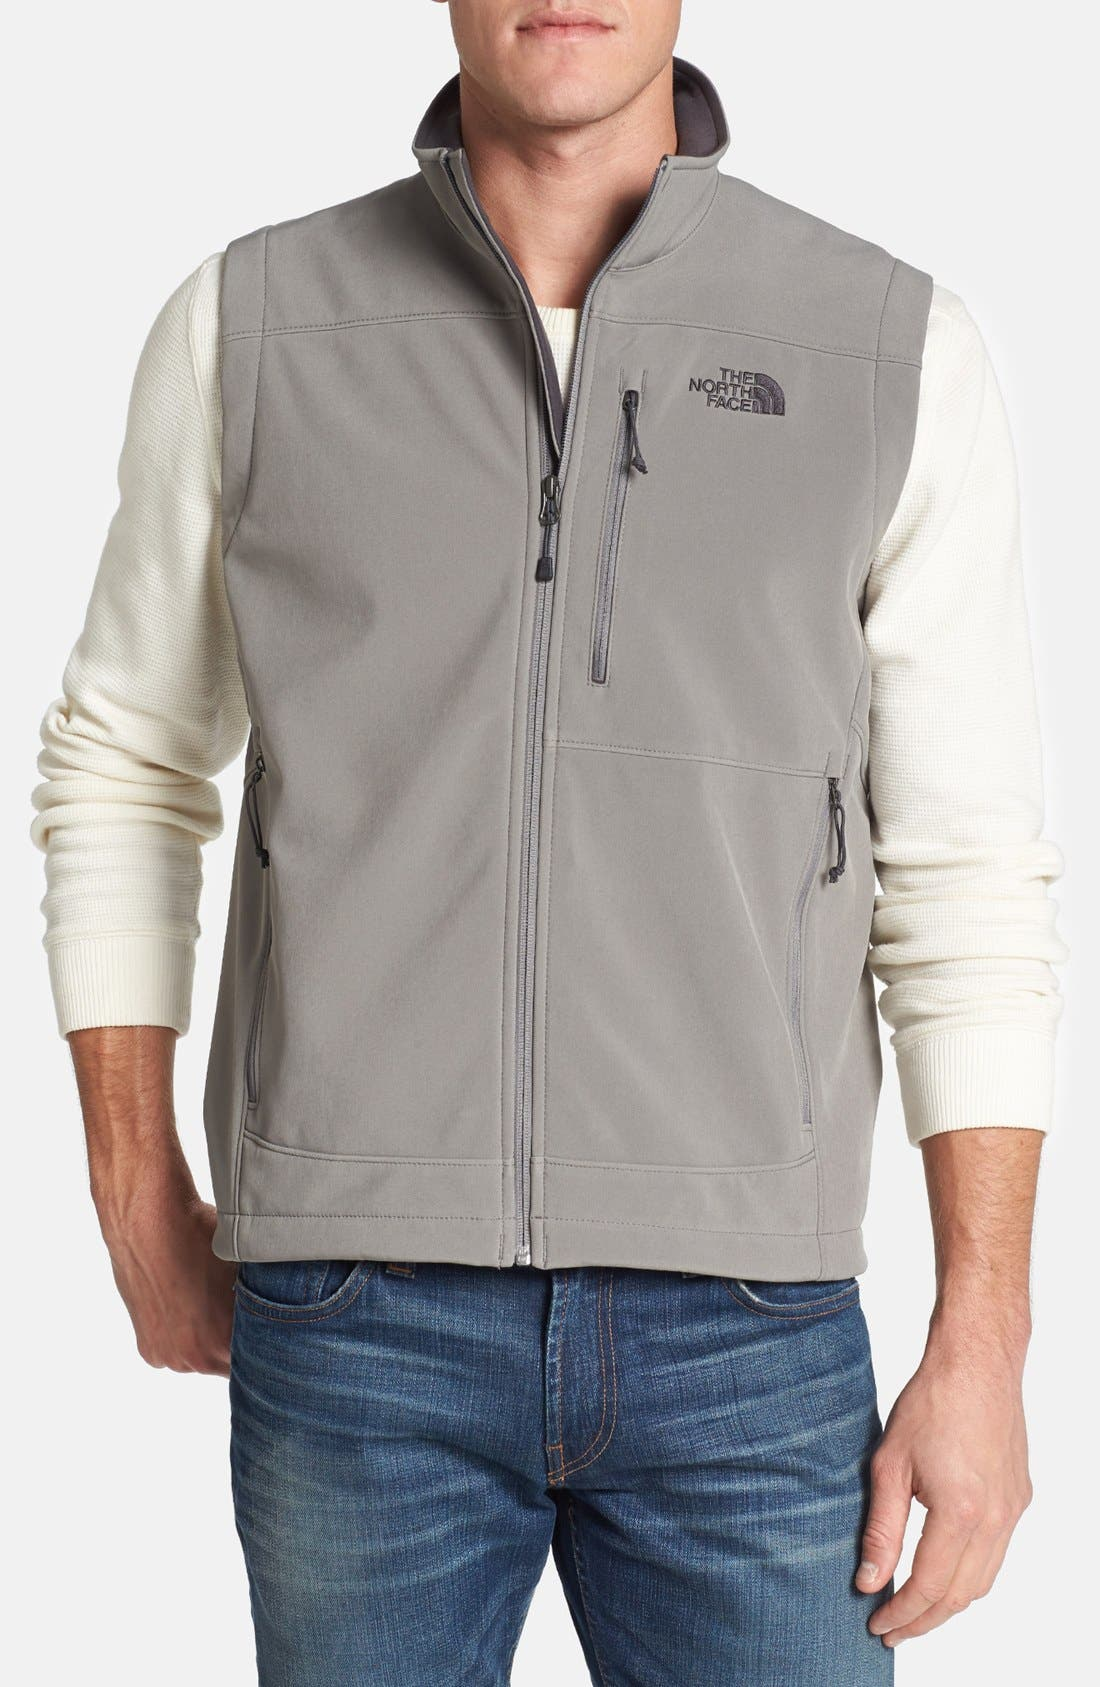 Alternate Image 1 Selected - The North Face 'Apex Bionic' Softshell Vest